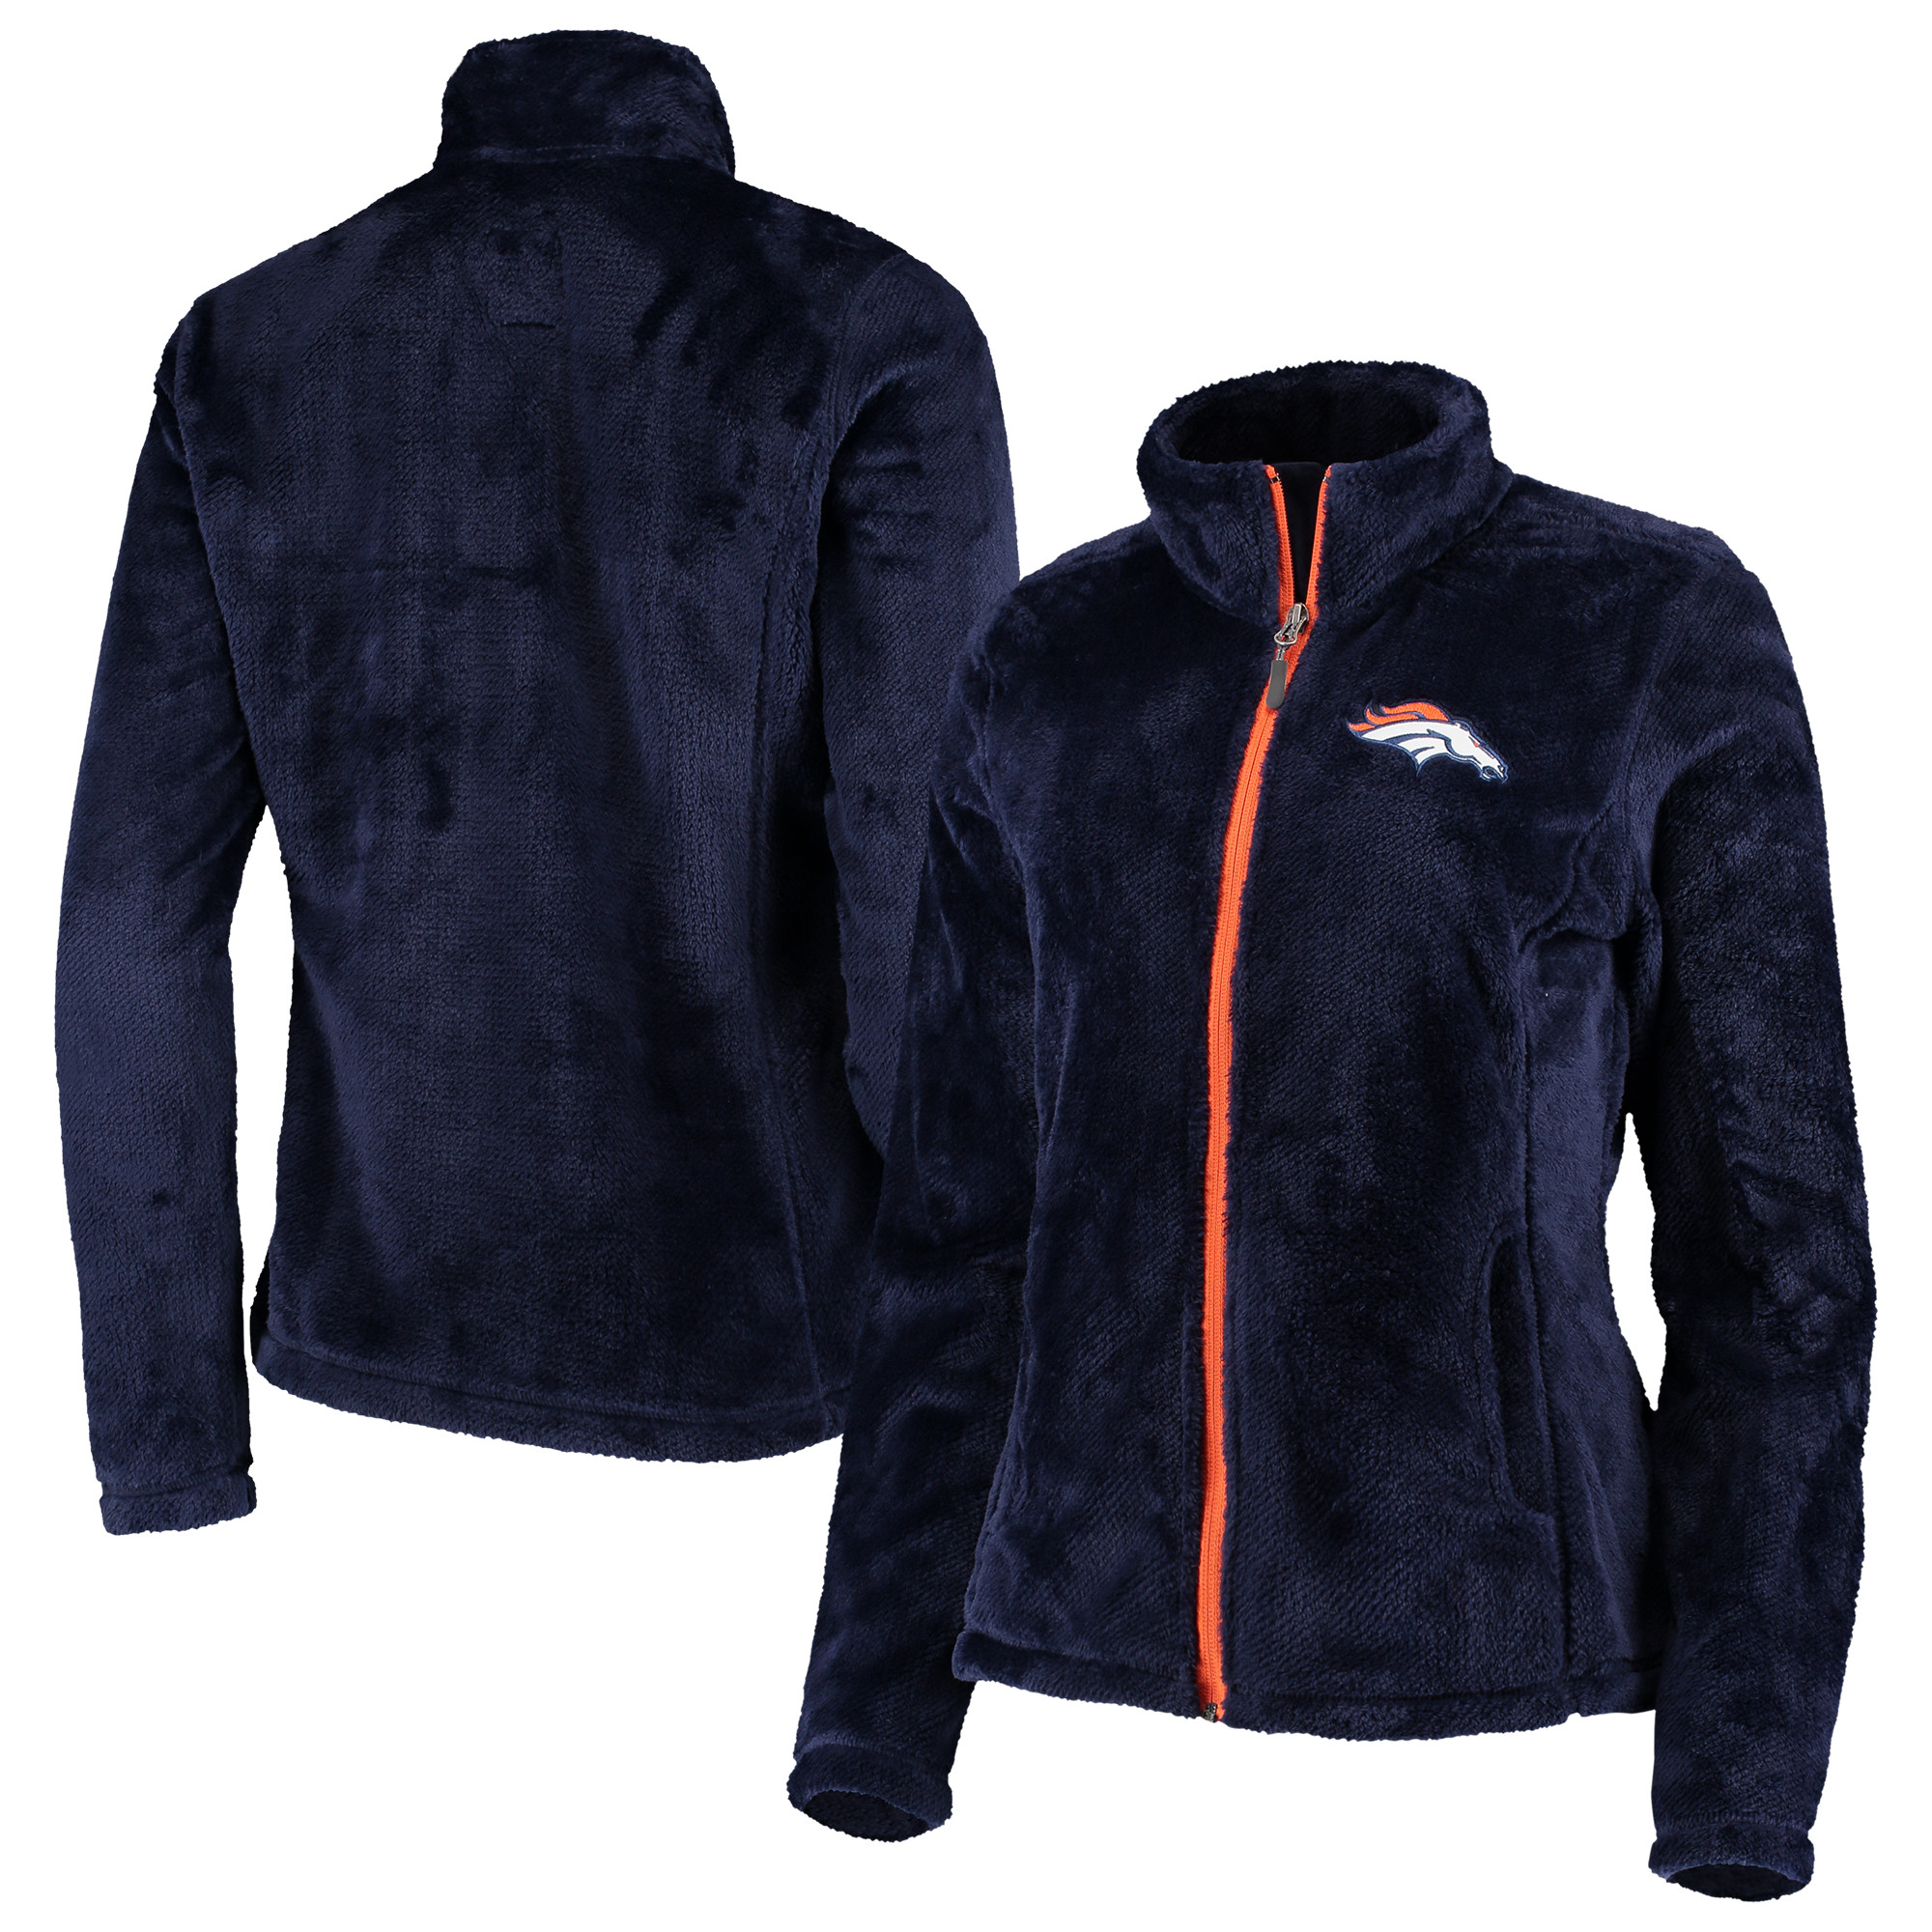 Denver Broncos G-III 4Her by Carl Banks Women's Goal Line Full-Zip Jacket - Navy